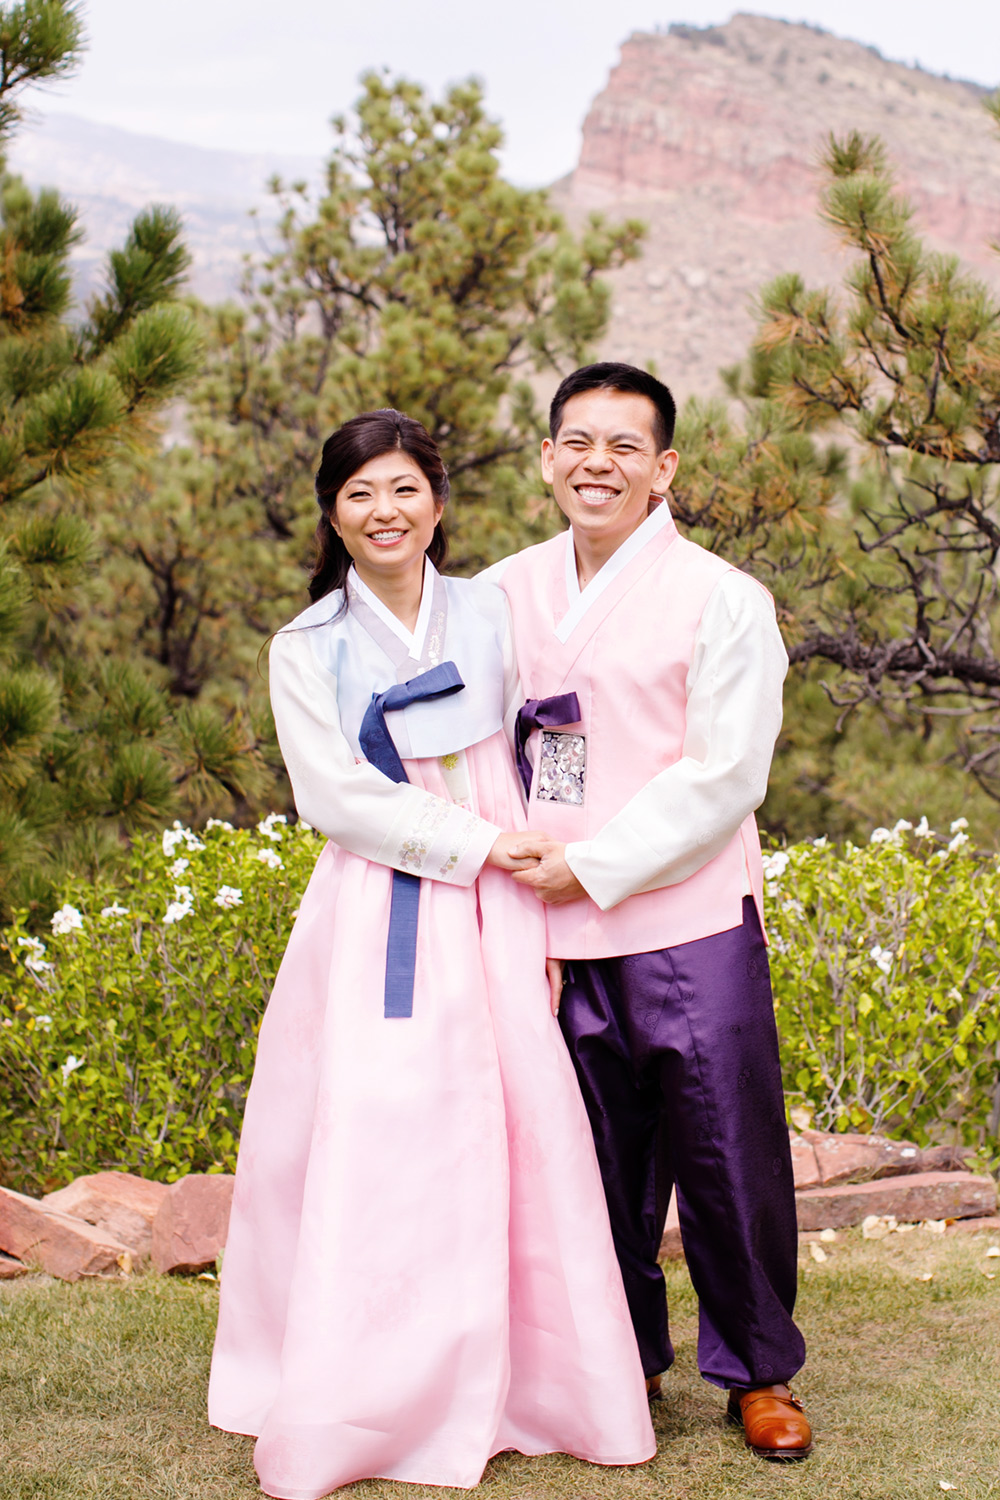 KoreanWeddingTimmer.jpg